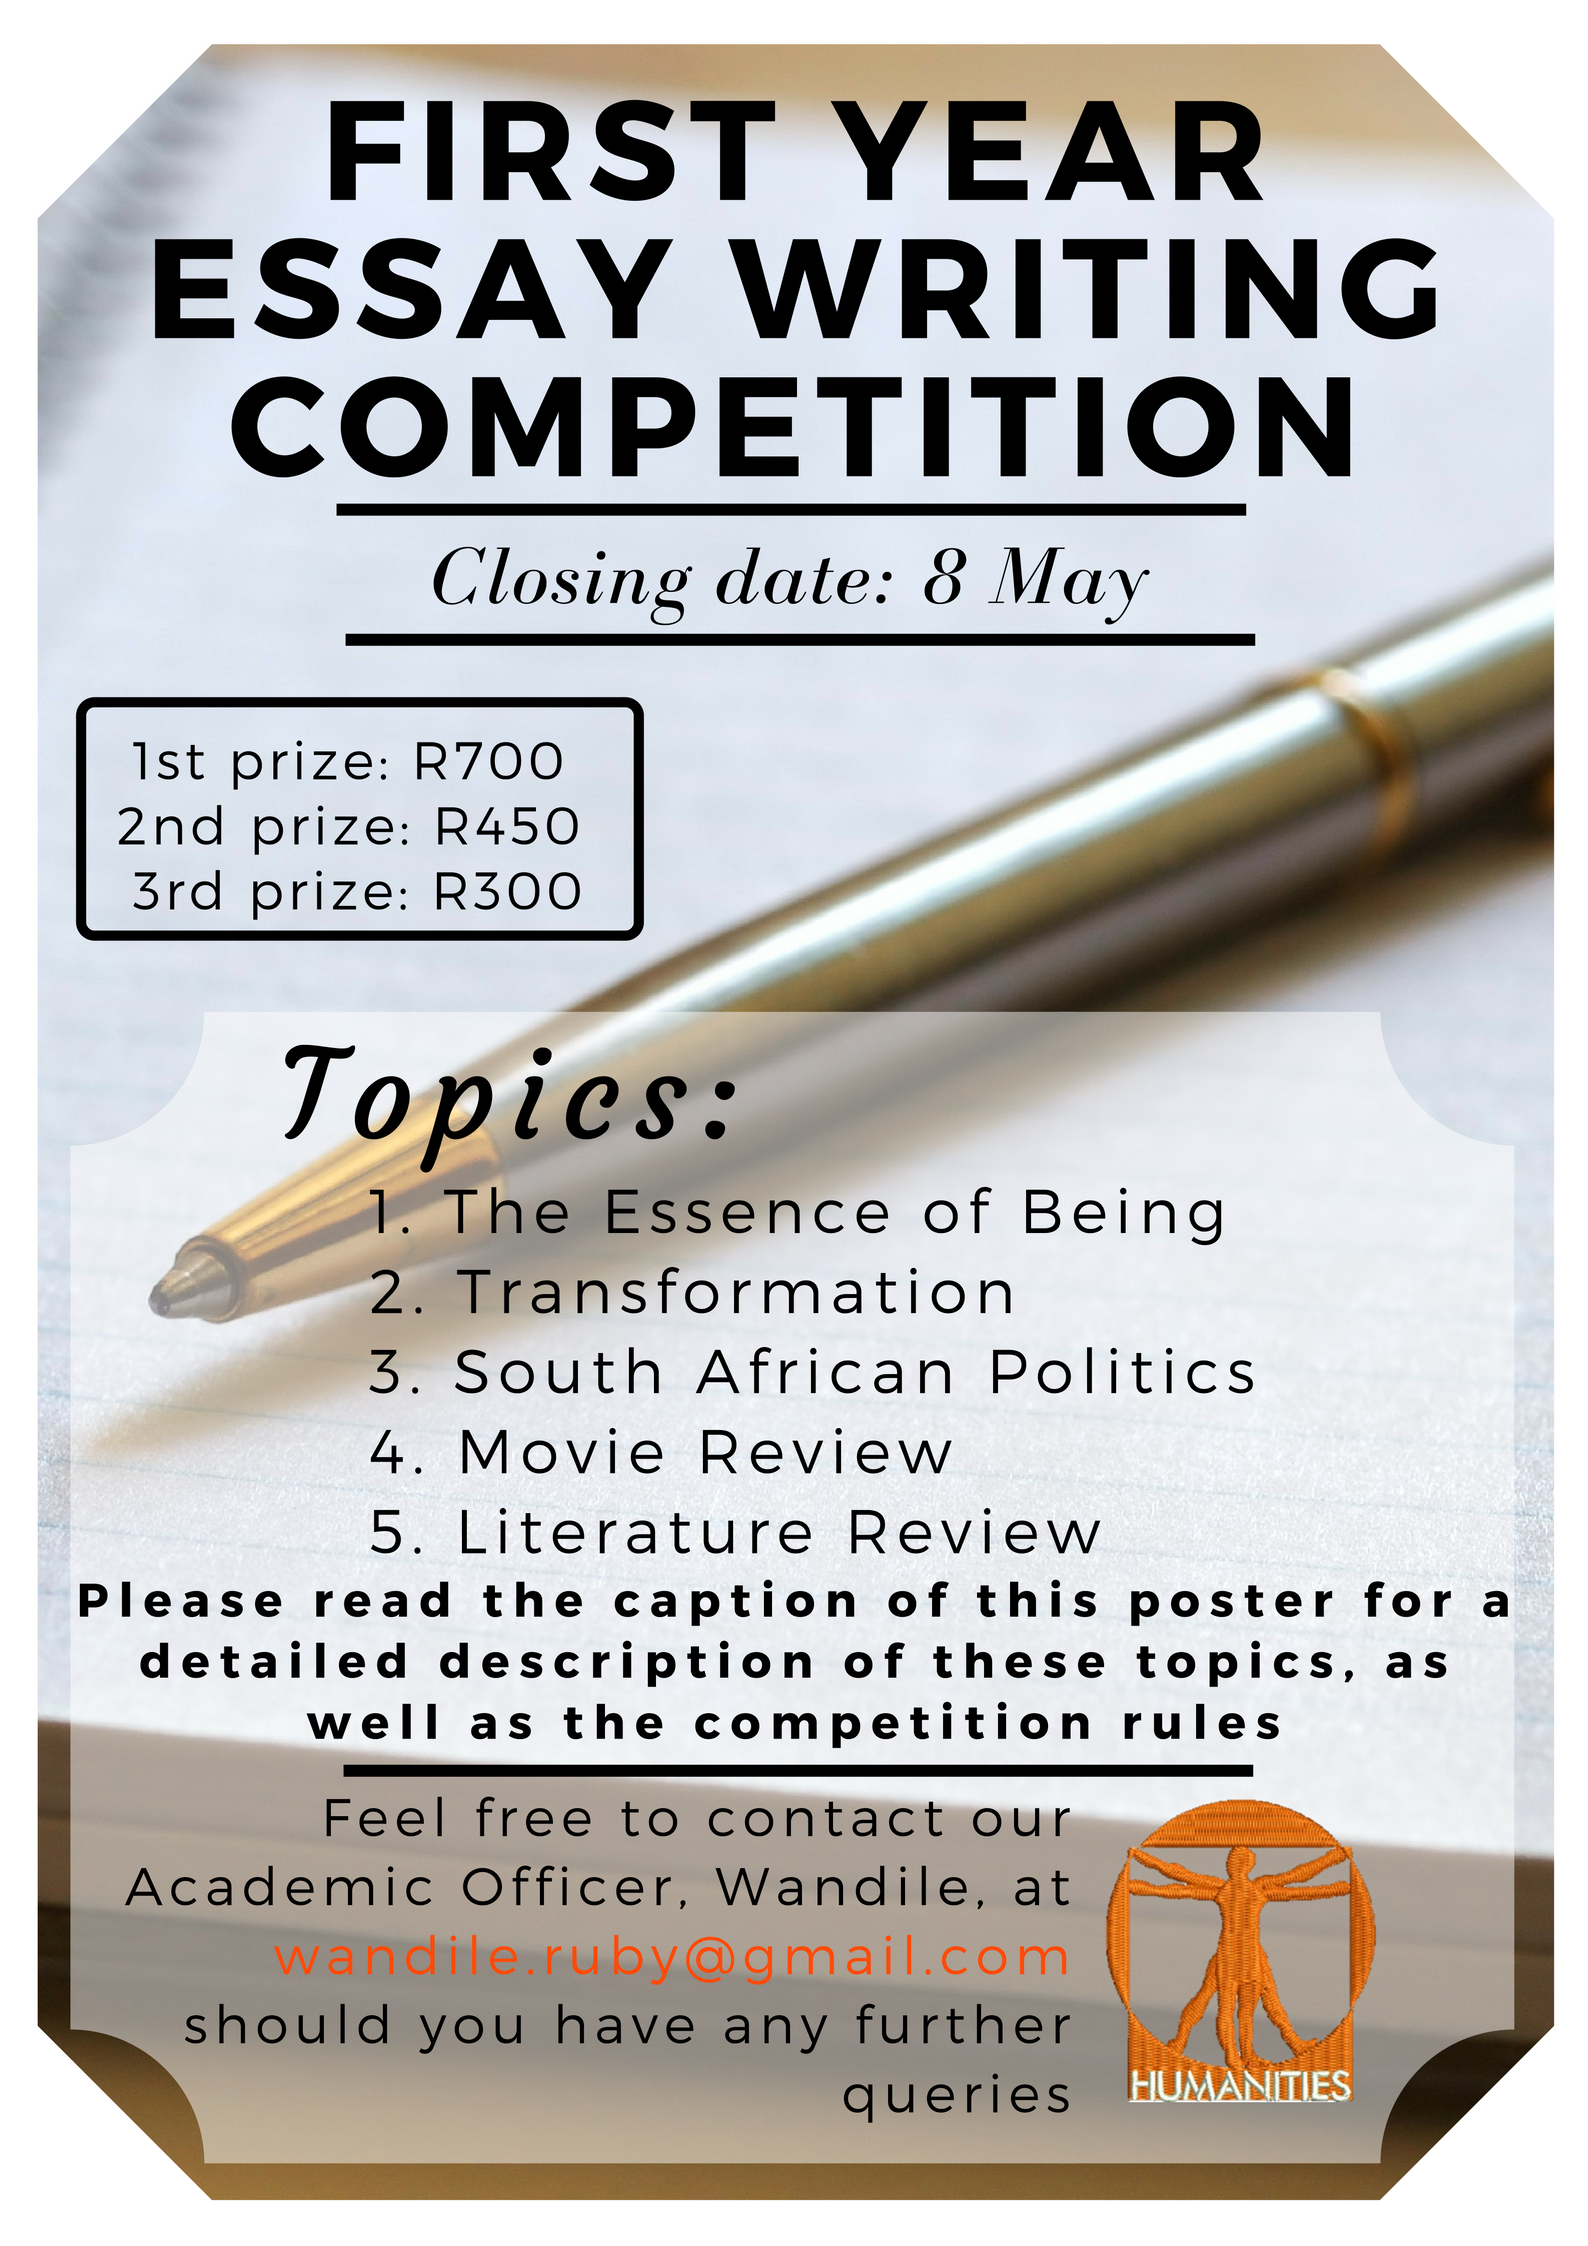 english literature essay competitions The berkeley prize competition was established in 1998, made possible by a generous gift of judith lee stronach to the department of architecture in the college of environmental design at the university of california, berkeley.